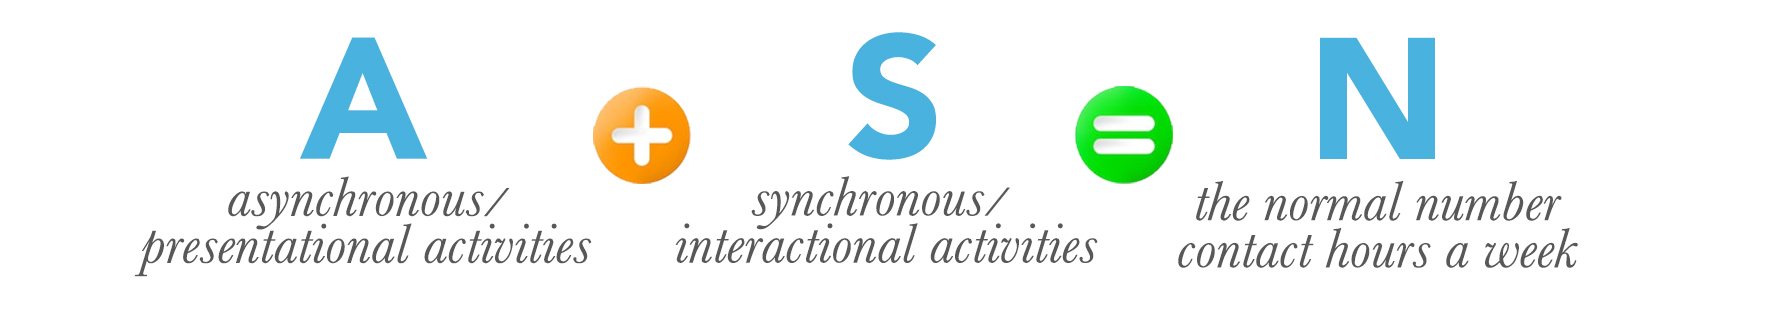 graphic that displays presentational/asynchronous activities + interactional/synchronous activities = the normal number contact hours a week